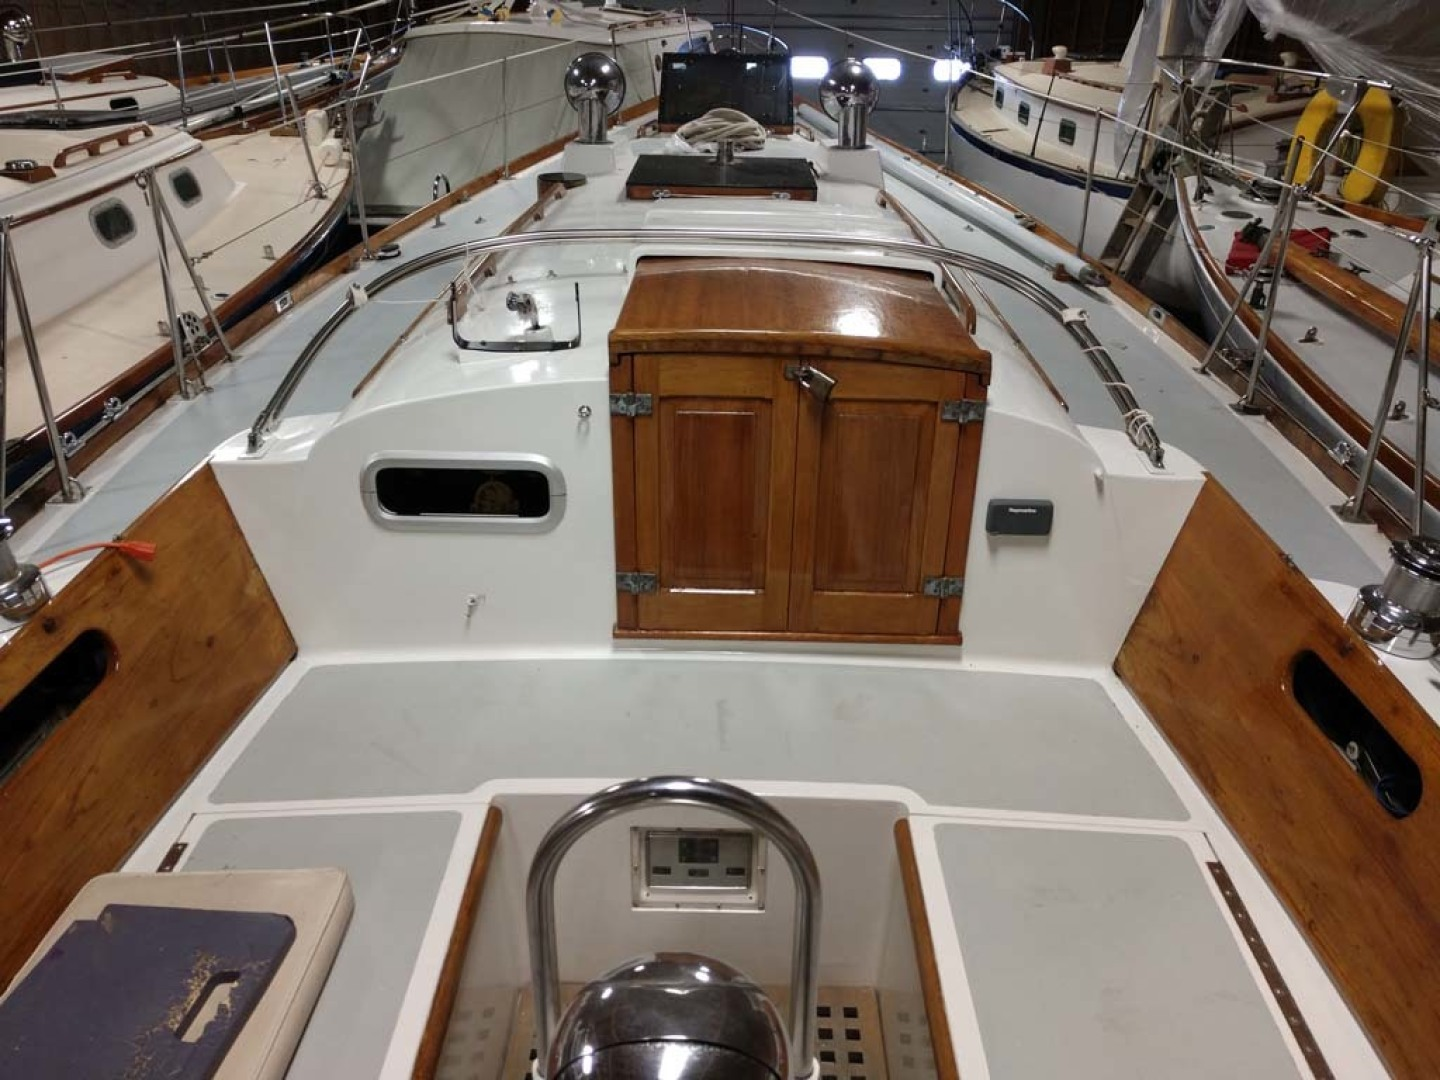 Hinckley-Bermuda 40 Yawl 1970-Rhodora South Berwick-Maine-United States-Cockpit Looking Forward-1585575 | Thumbnail